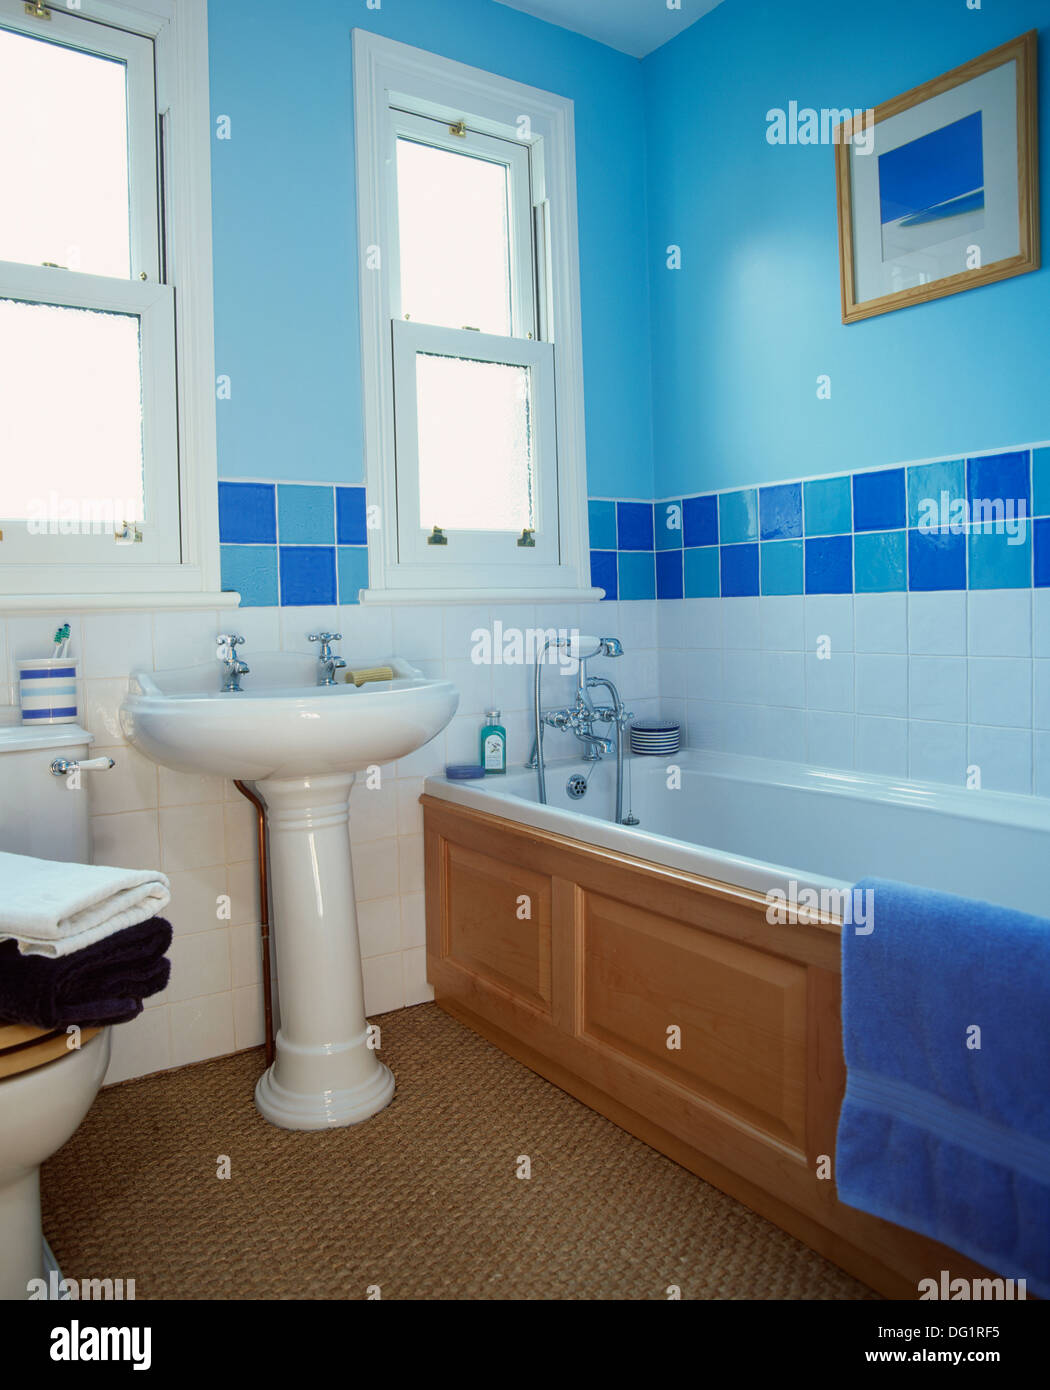 Blue Tiles Above Bath In Stock Photos & Blue Tiles Above Bath In ...